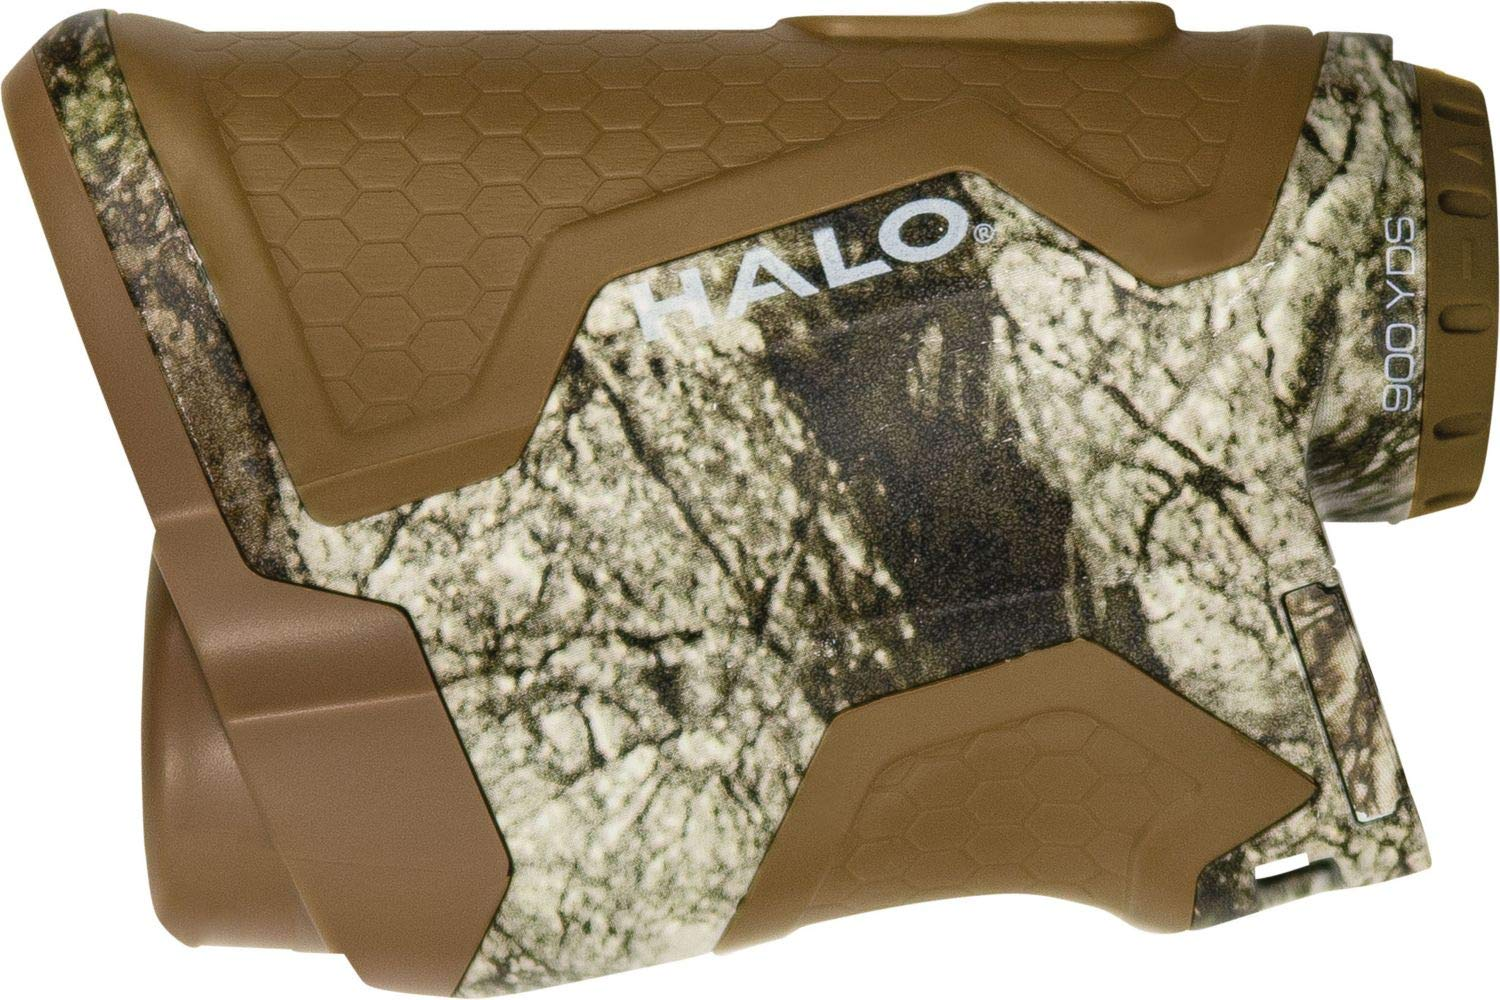 Halo Optics XR900 Series 6X 900 Yd. Hunting Laser Range Finder with Scan Mode, Camo by Halo Optics